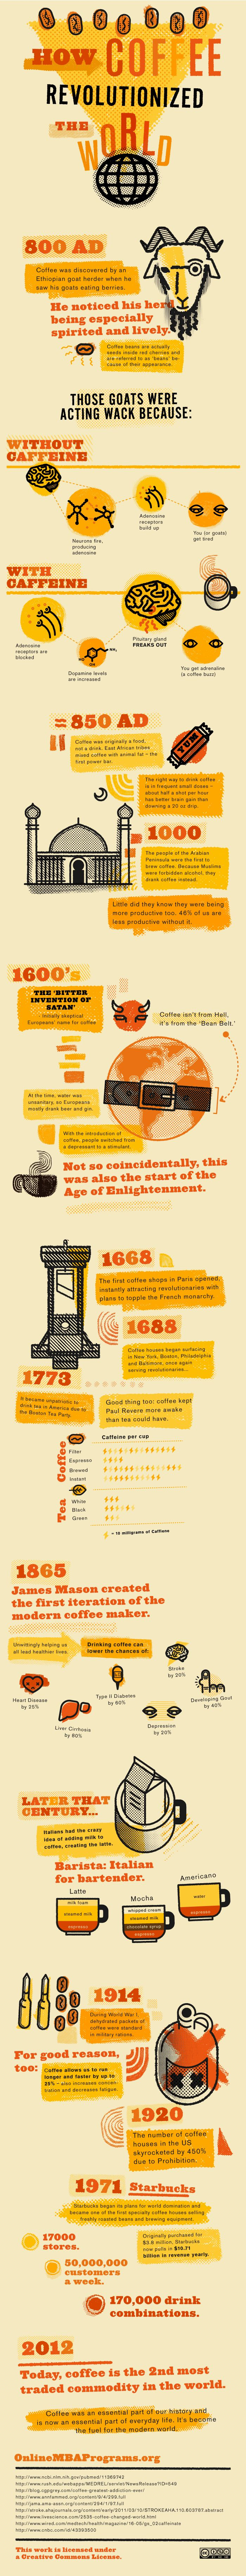 how coffee revolutionized the world.... this intrigued my teacher senses and coffee addiction ;)